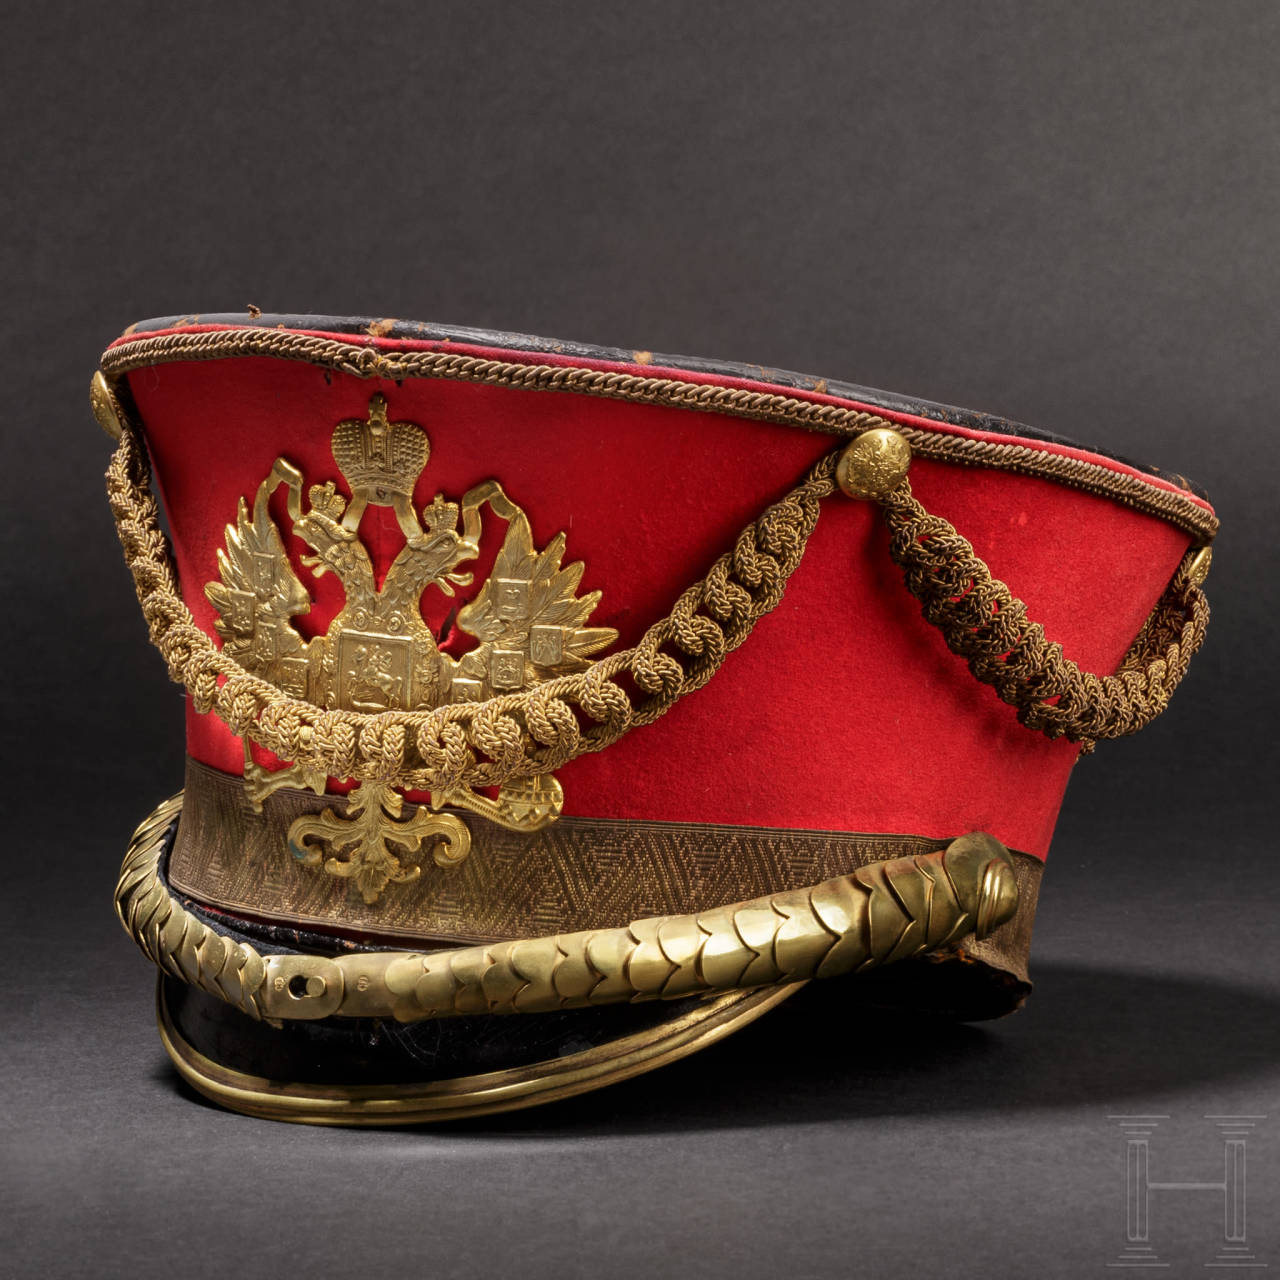 A shako M 1910 for a general of the cavalry in the Imperial Lifeguard